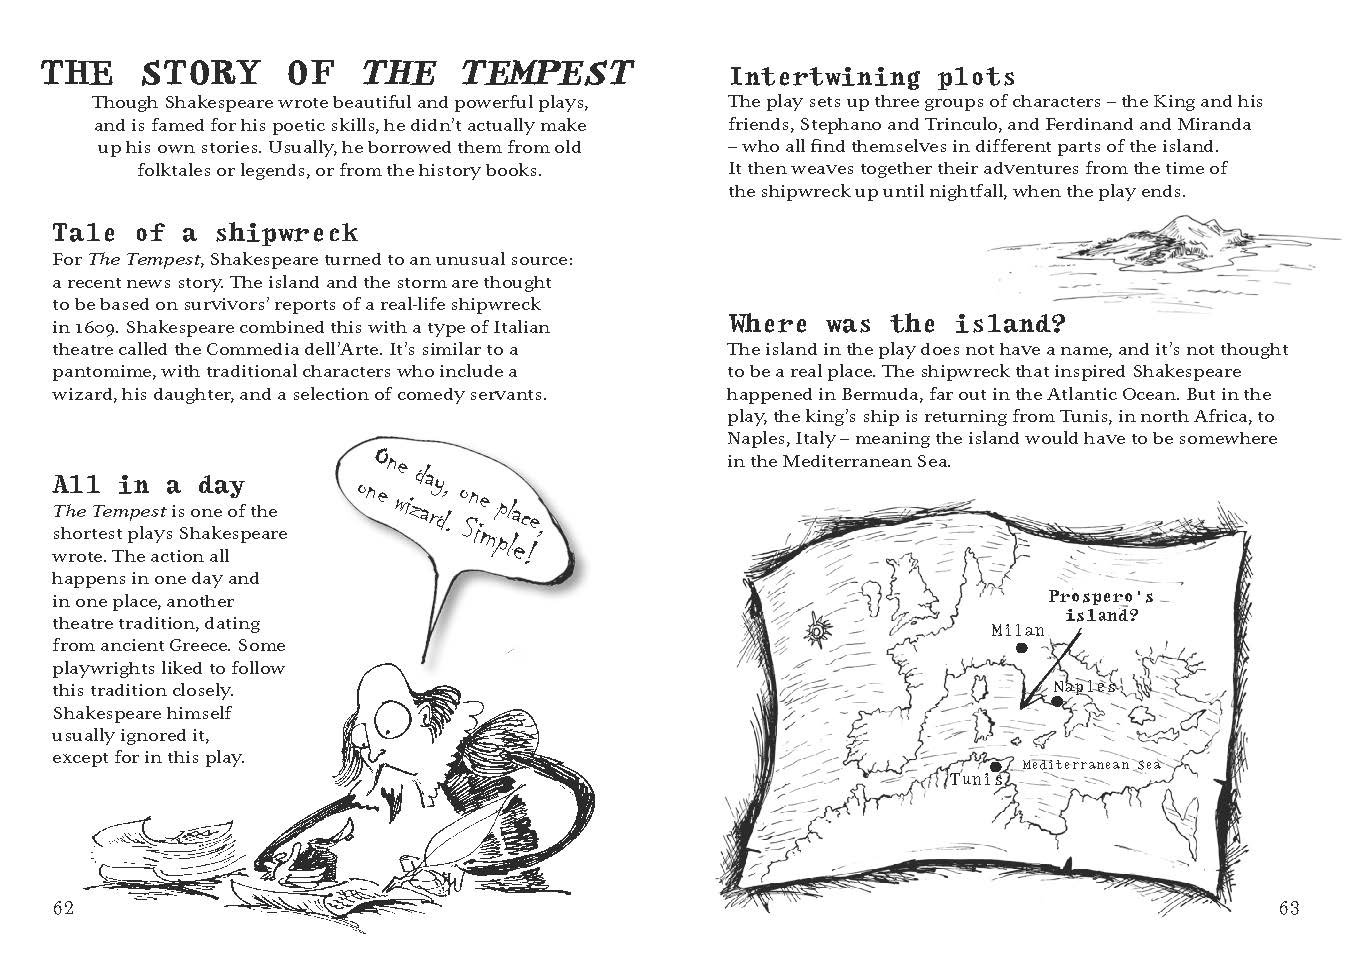 a character analysis of the story the tempest The smh the tempest depicts many close-up images of the characters or portions of their bodies such as the hands or eyes the effect of this is that the character and emotion of the play is highlighted by drawing the reader's attention to expressions and gestures rather than the physical action of the play.